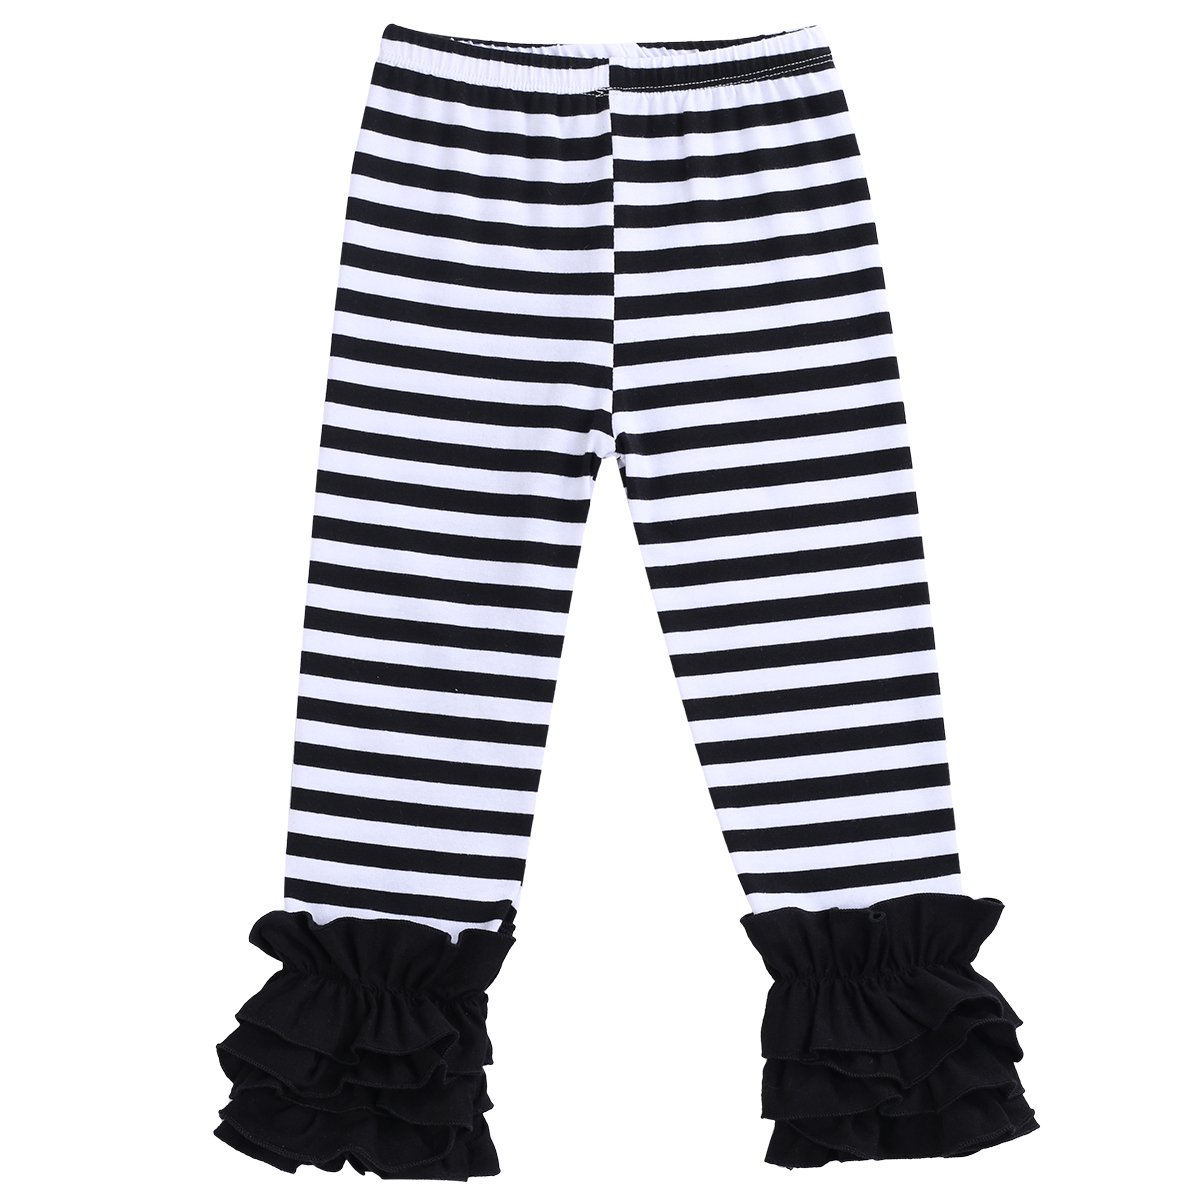 Little Girl's Double Icing Ruffle Leggings Toddler Girl Triple Cotton Boutique Elastic Waist Slacks Joggers Activewear Black Striped 12-18 Months